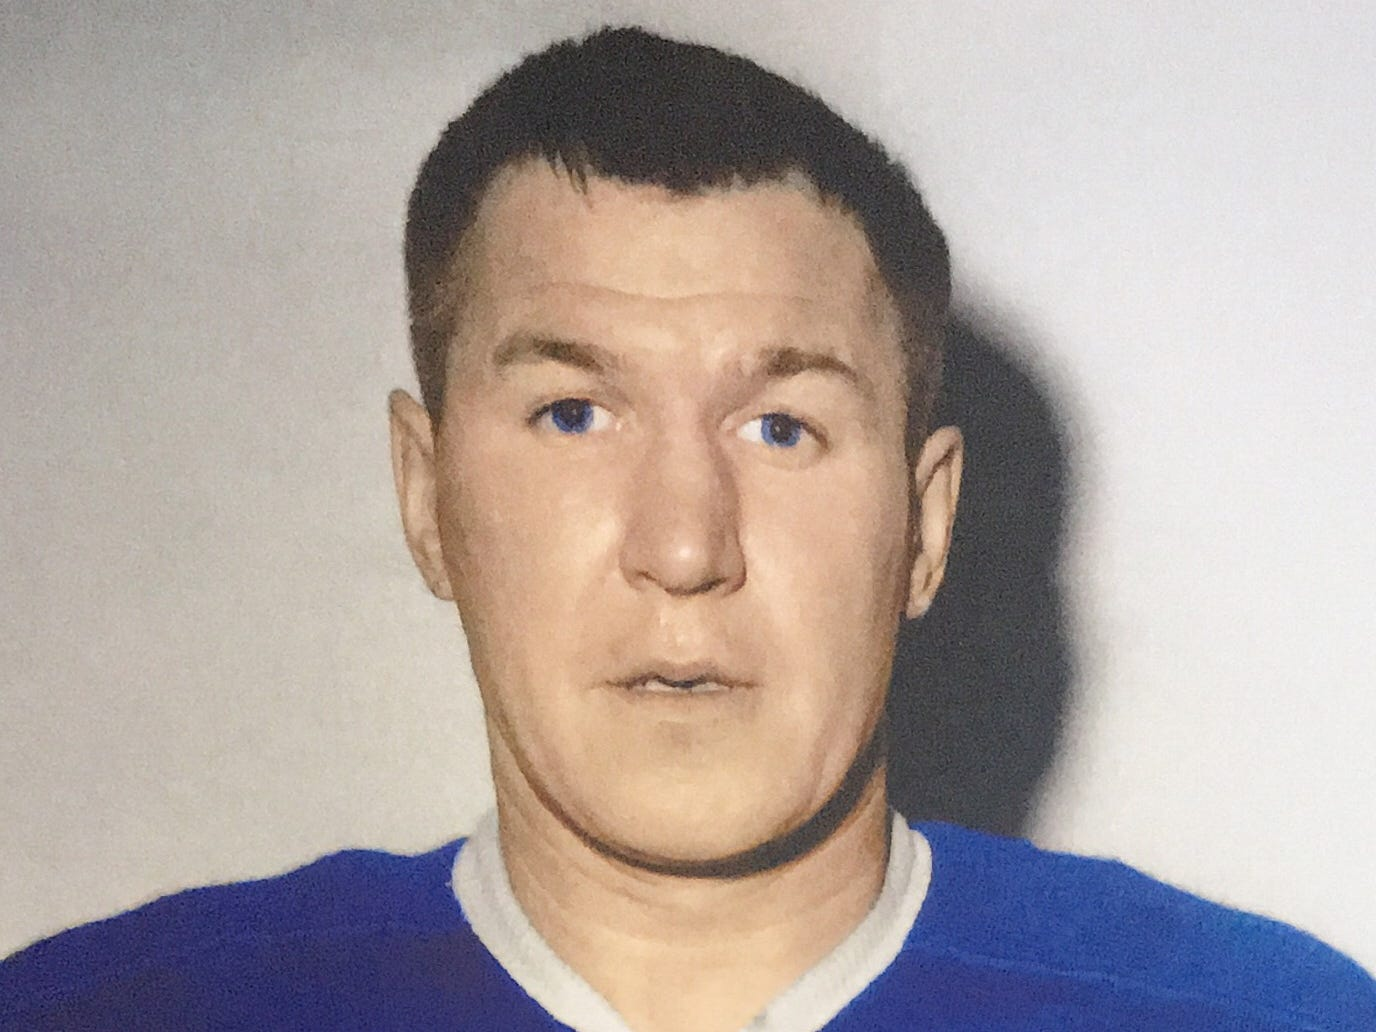 Joe Crozier played five games for the Toronto Maple Leafs during the 1959-60 season, recording three assists and two penalty minutes. He joined the Rochester Americans for the 1960-61 campaign.